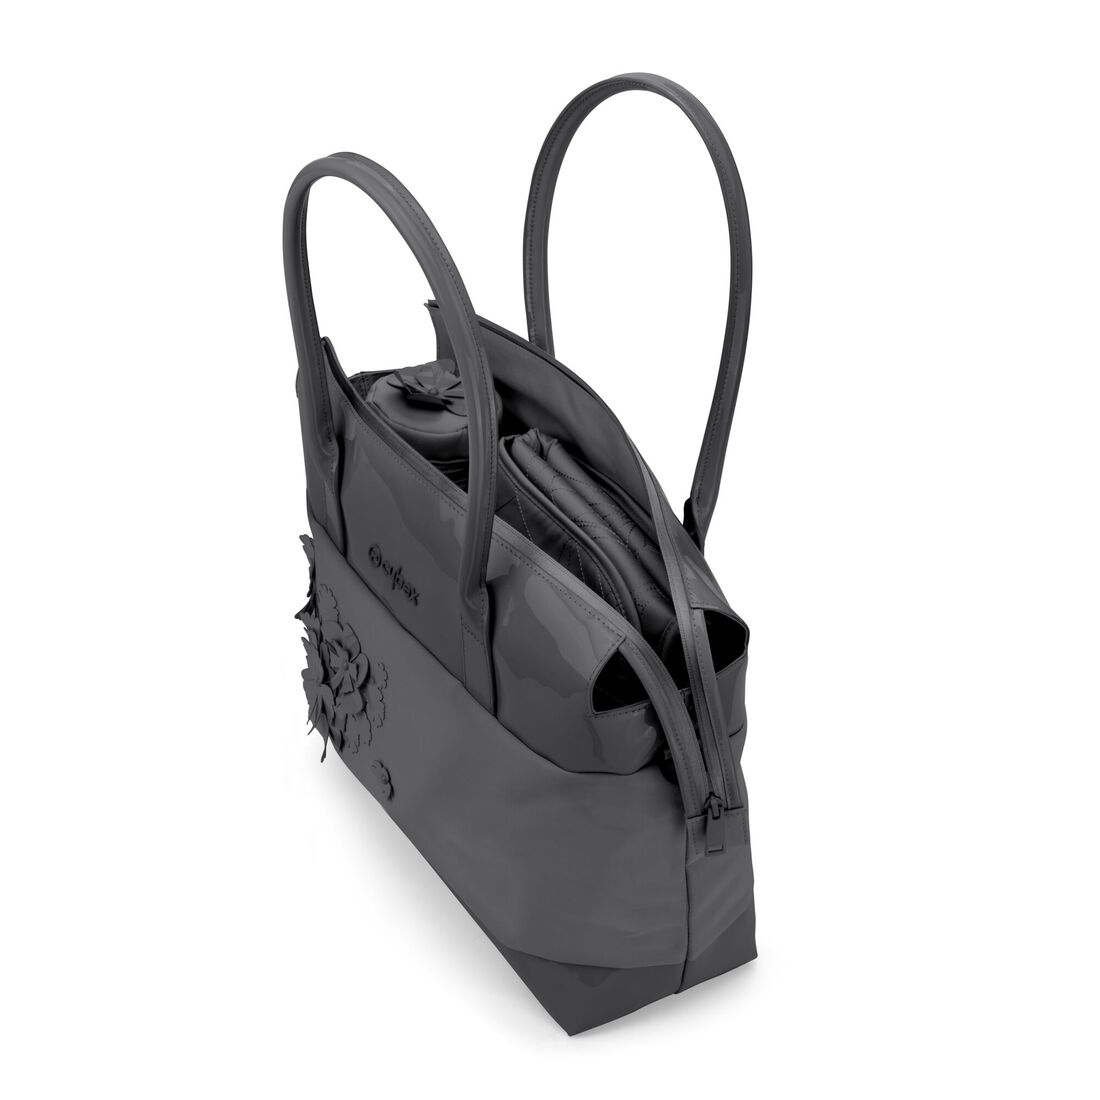 CYBEX Changing Bag Simply Flowers - Dream Grey in Dream Grey large image number 2